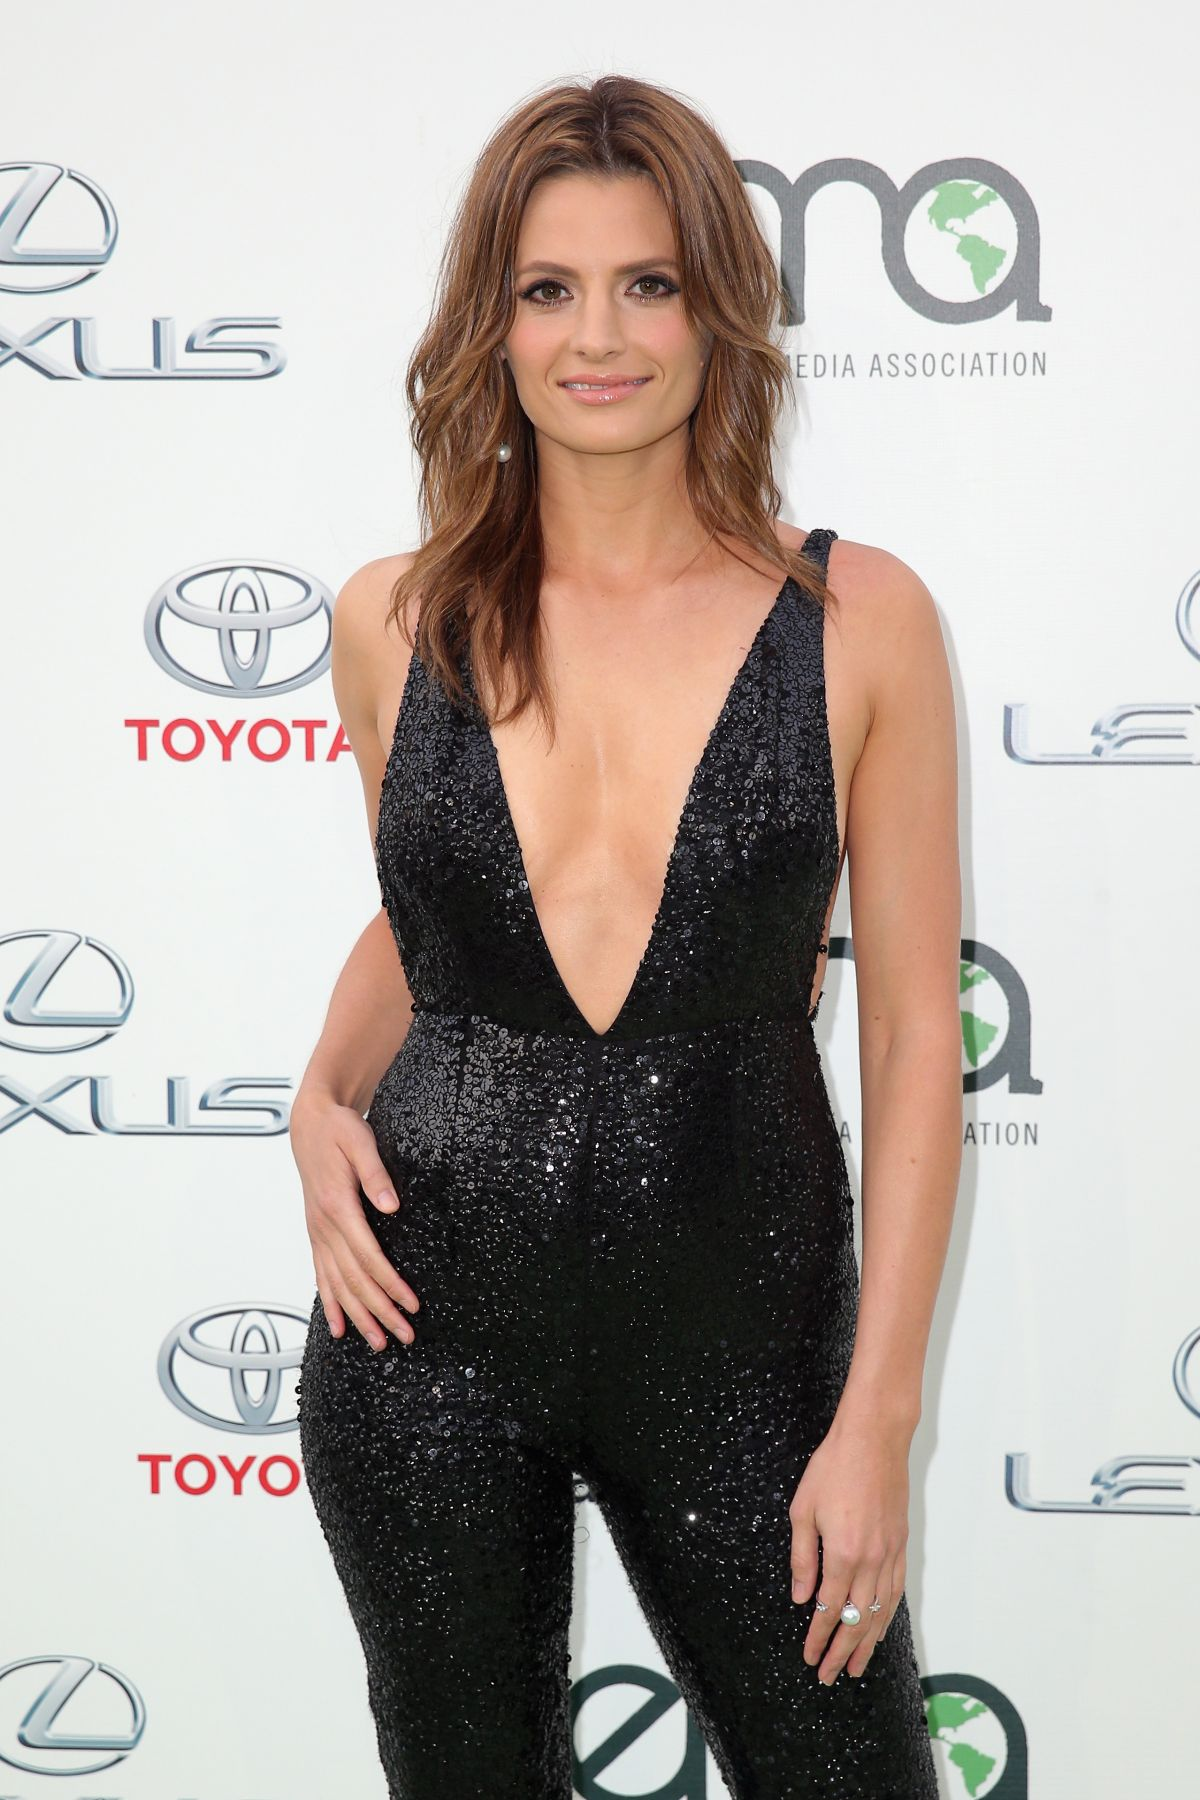 STANA KATIC at 2015 EMA Awards in Burbank 10/24/2015